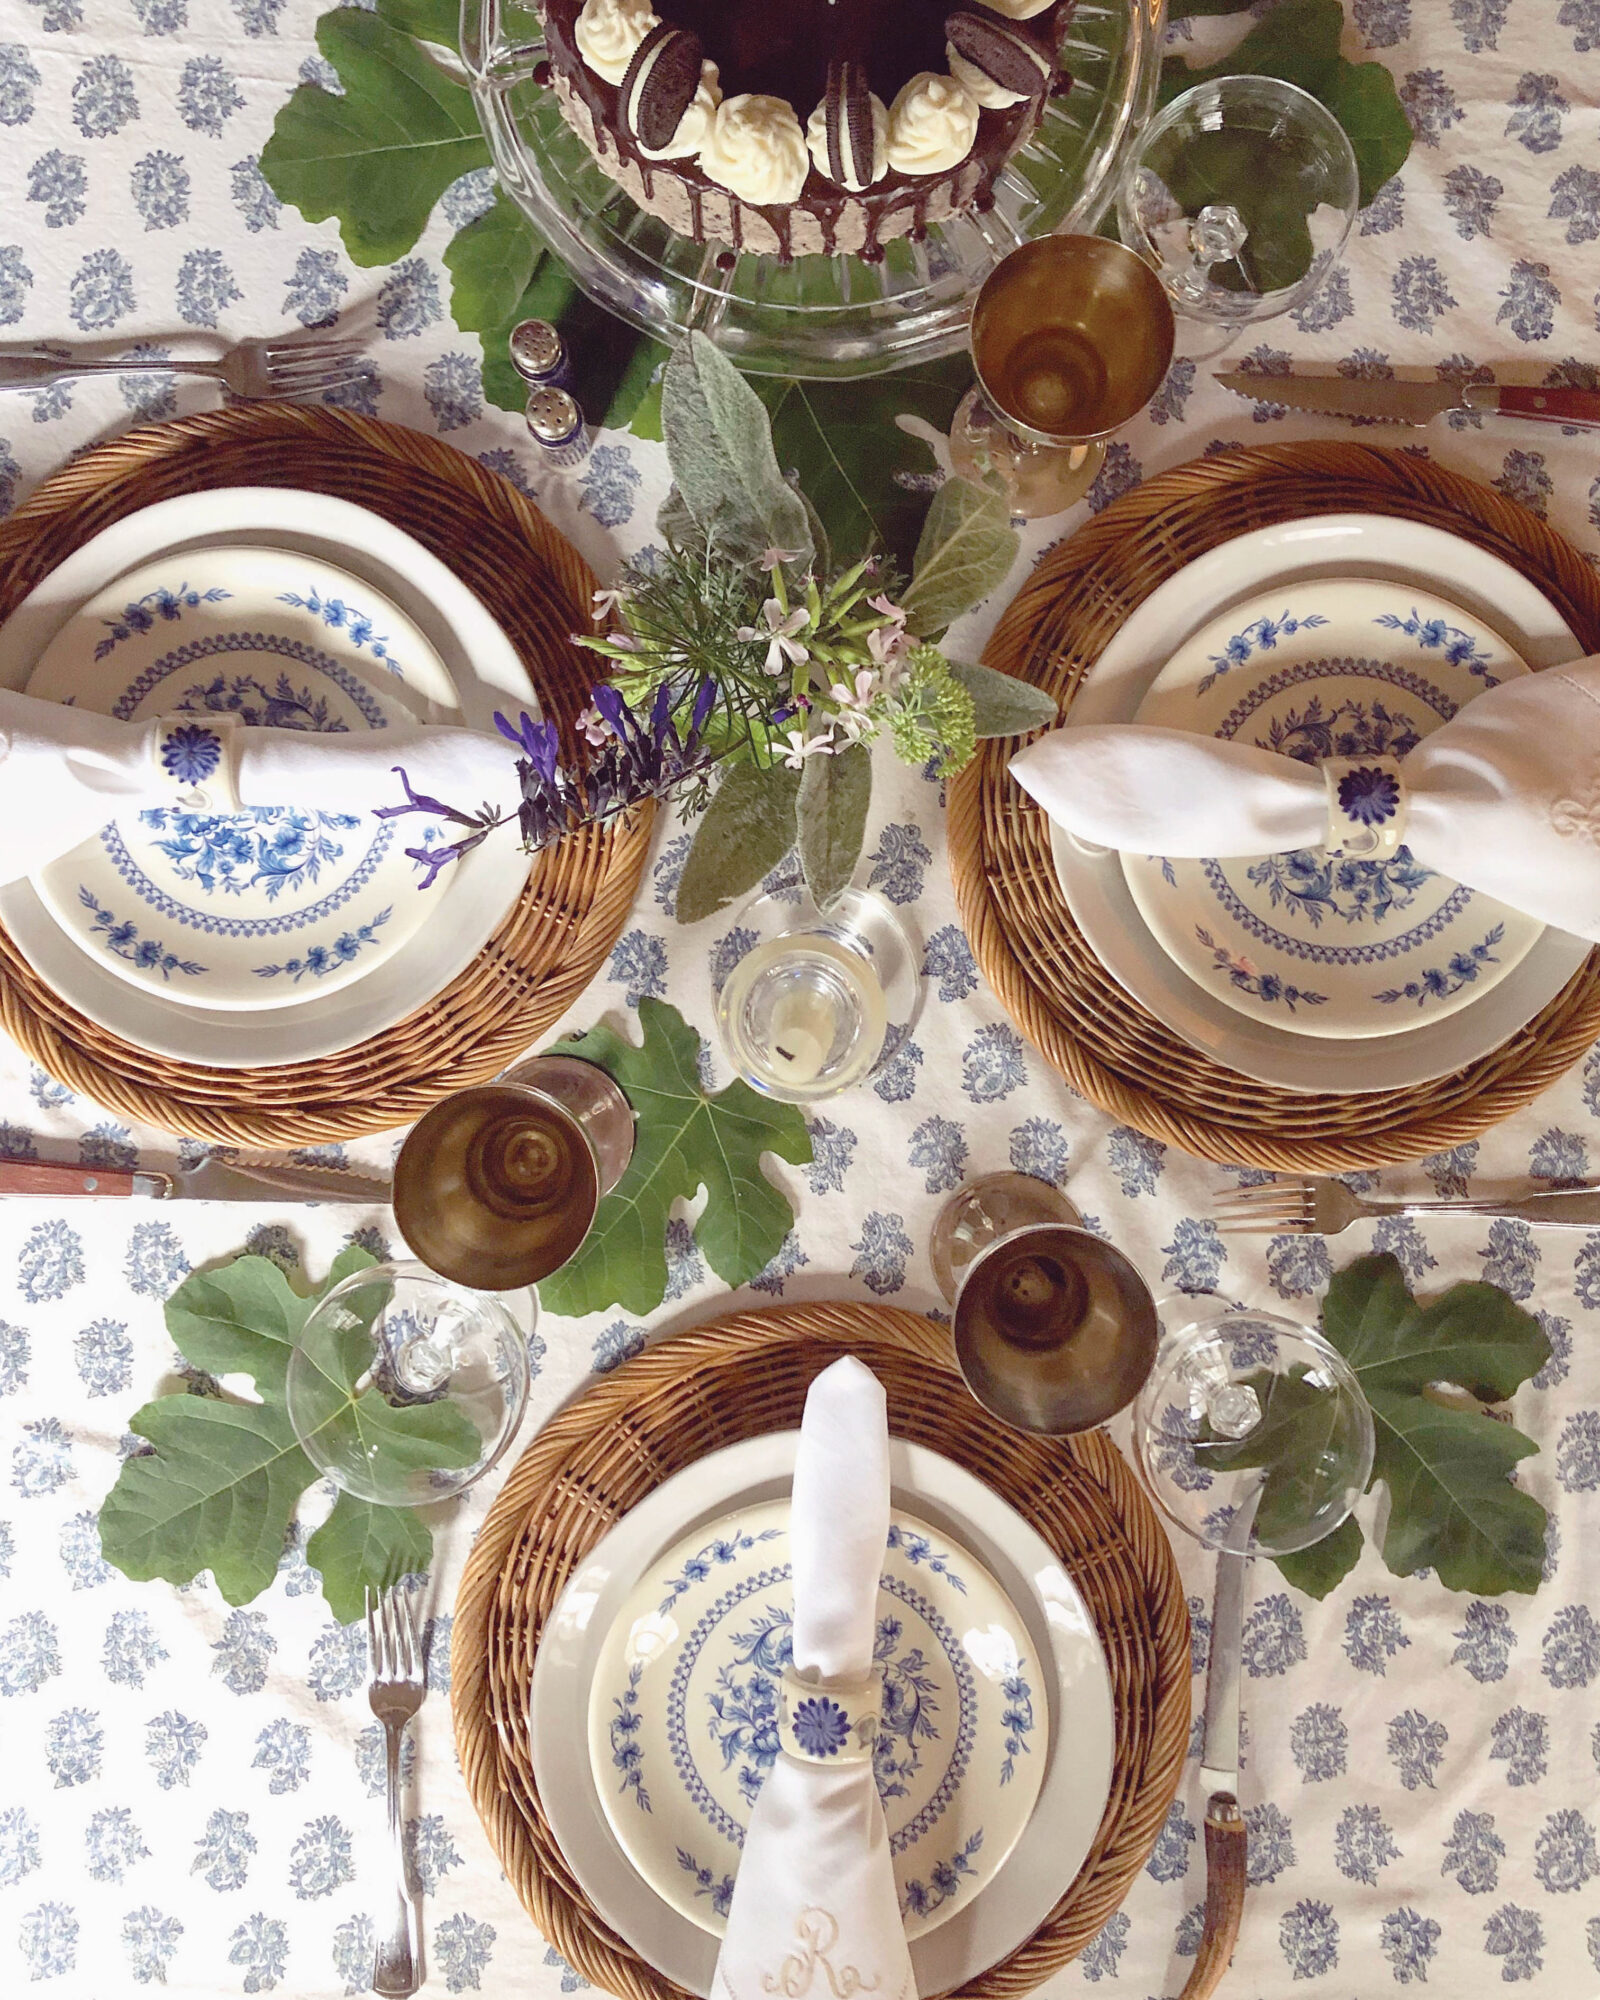 table setting of printed linens and wicker chargers with surrounding greenery